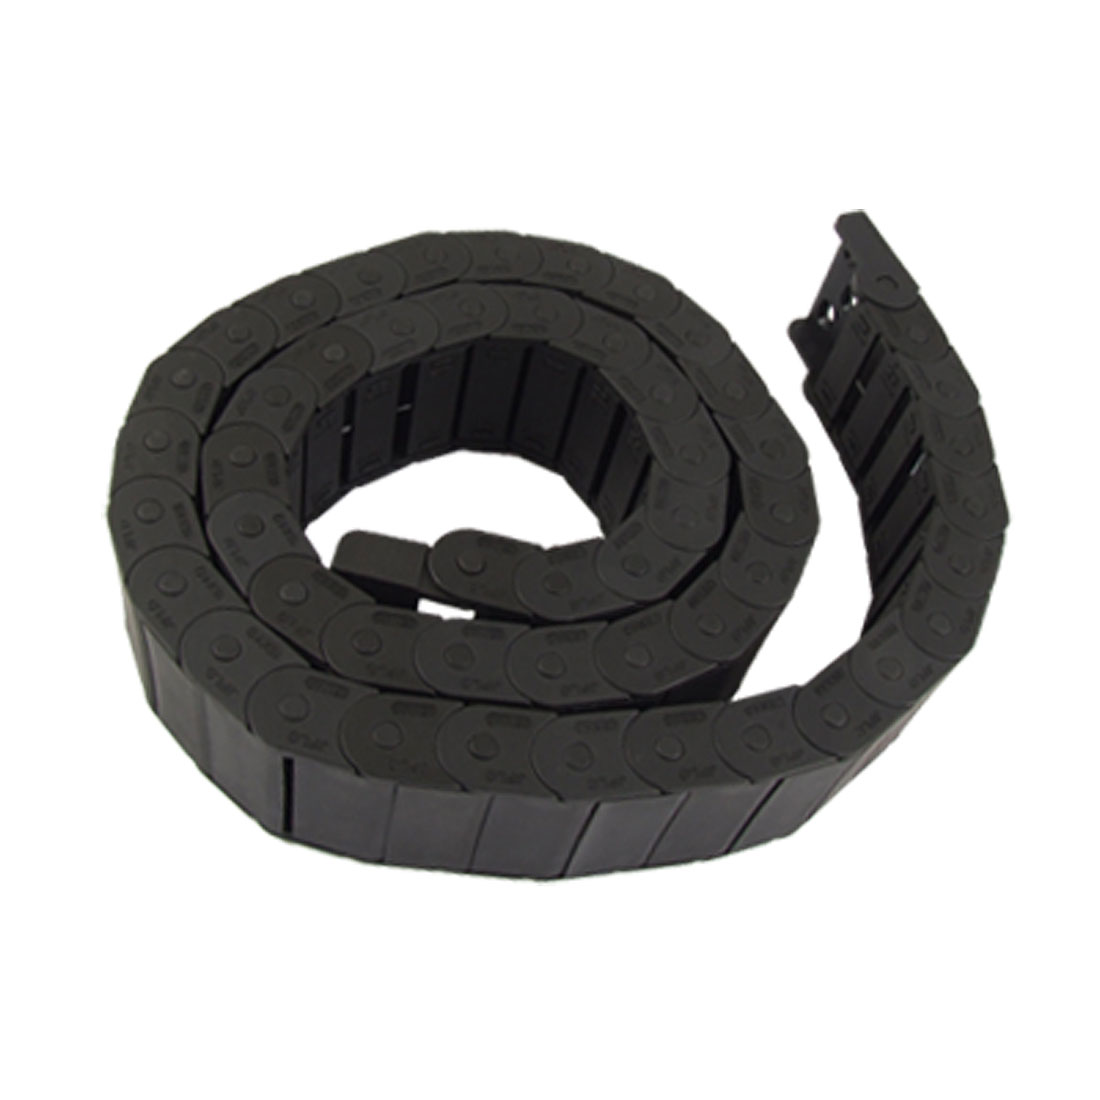 15 x 40mm Black Plastic Towline Semi Enclosed Type Drag Chain